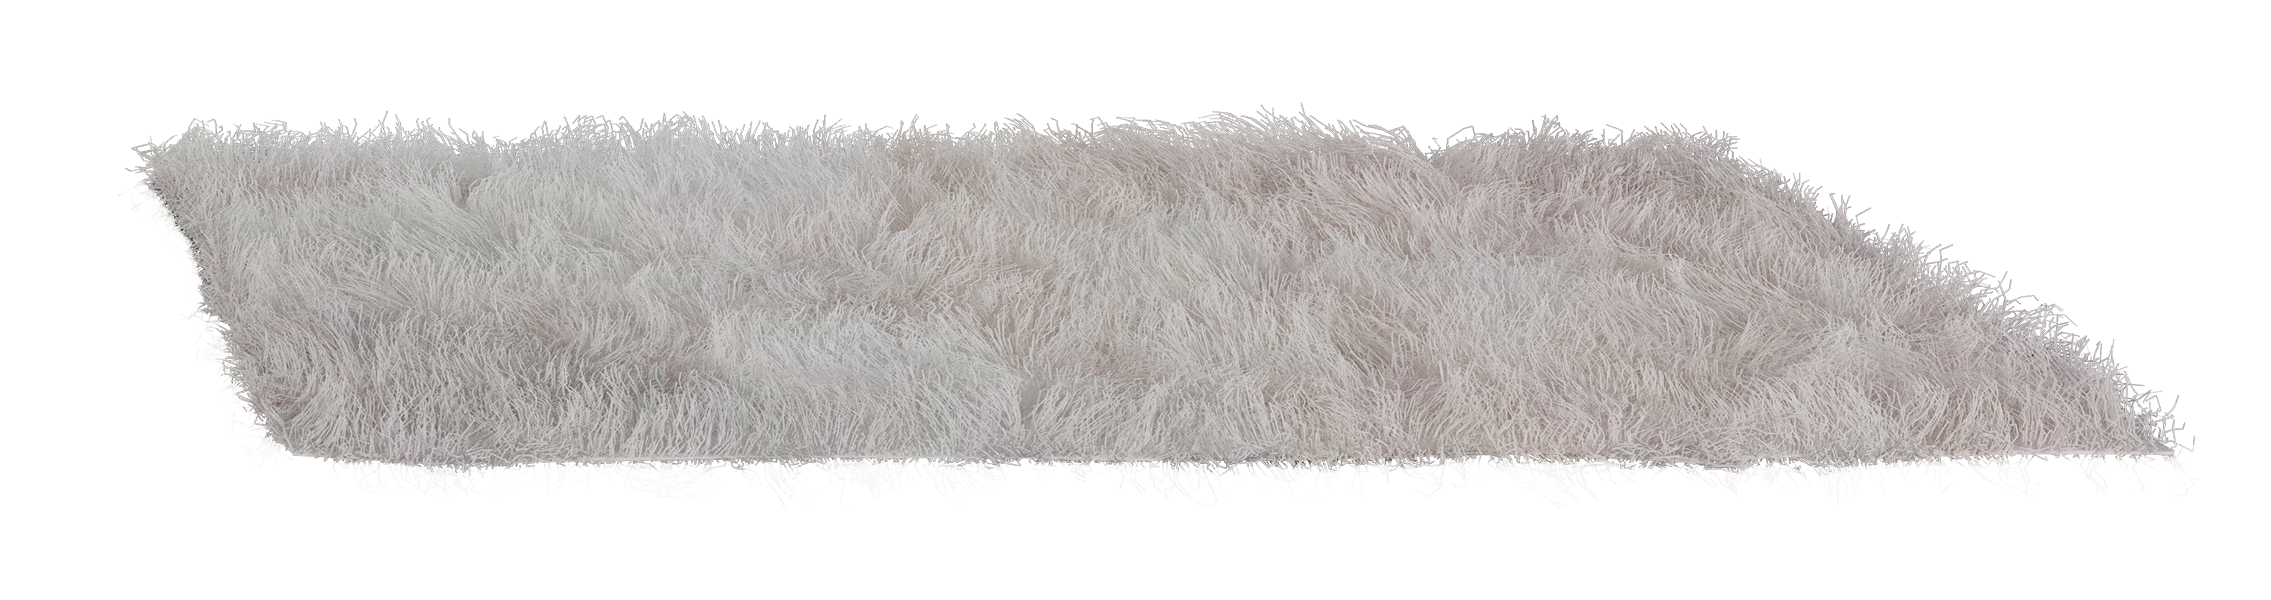 Fur rug png. Grey soft carpet image